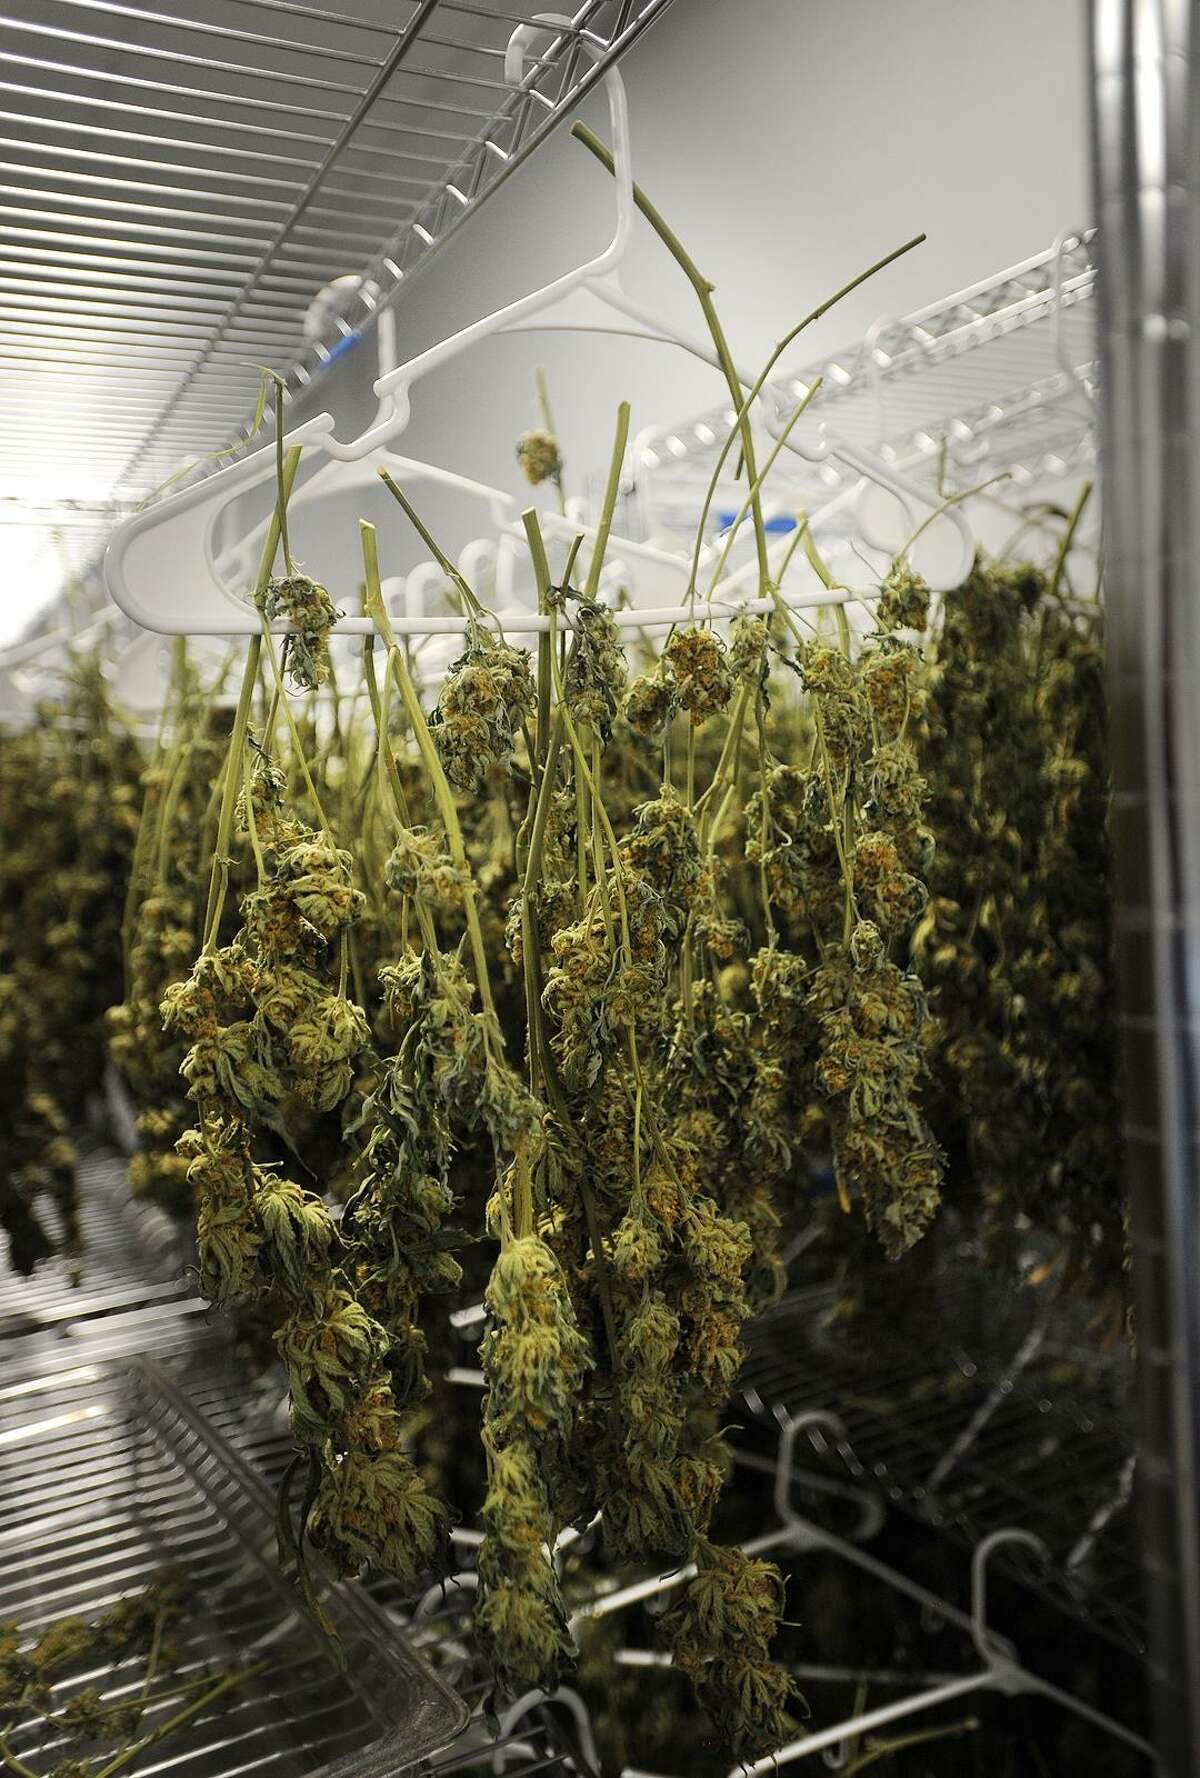 In this file photo, buds of medical marijuana hang from coat hangers in the curing room at Advanced Grow Labs in West Haven.